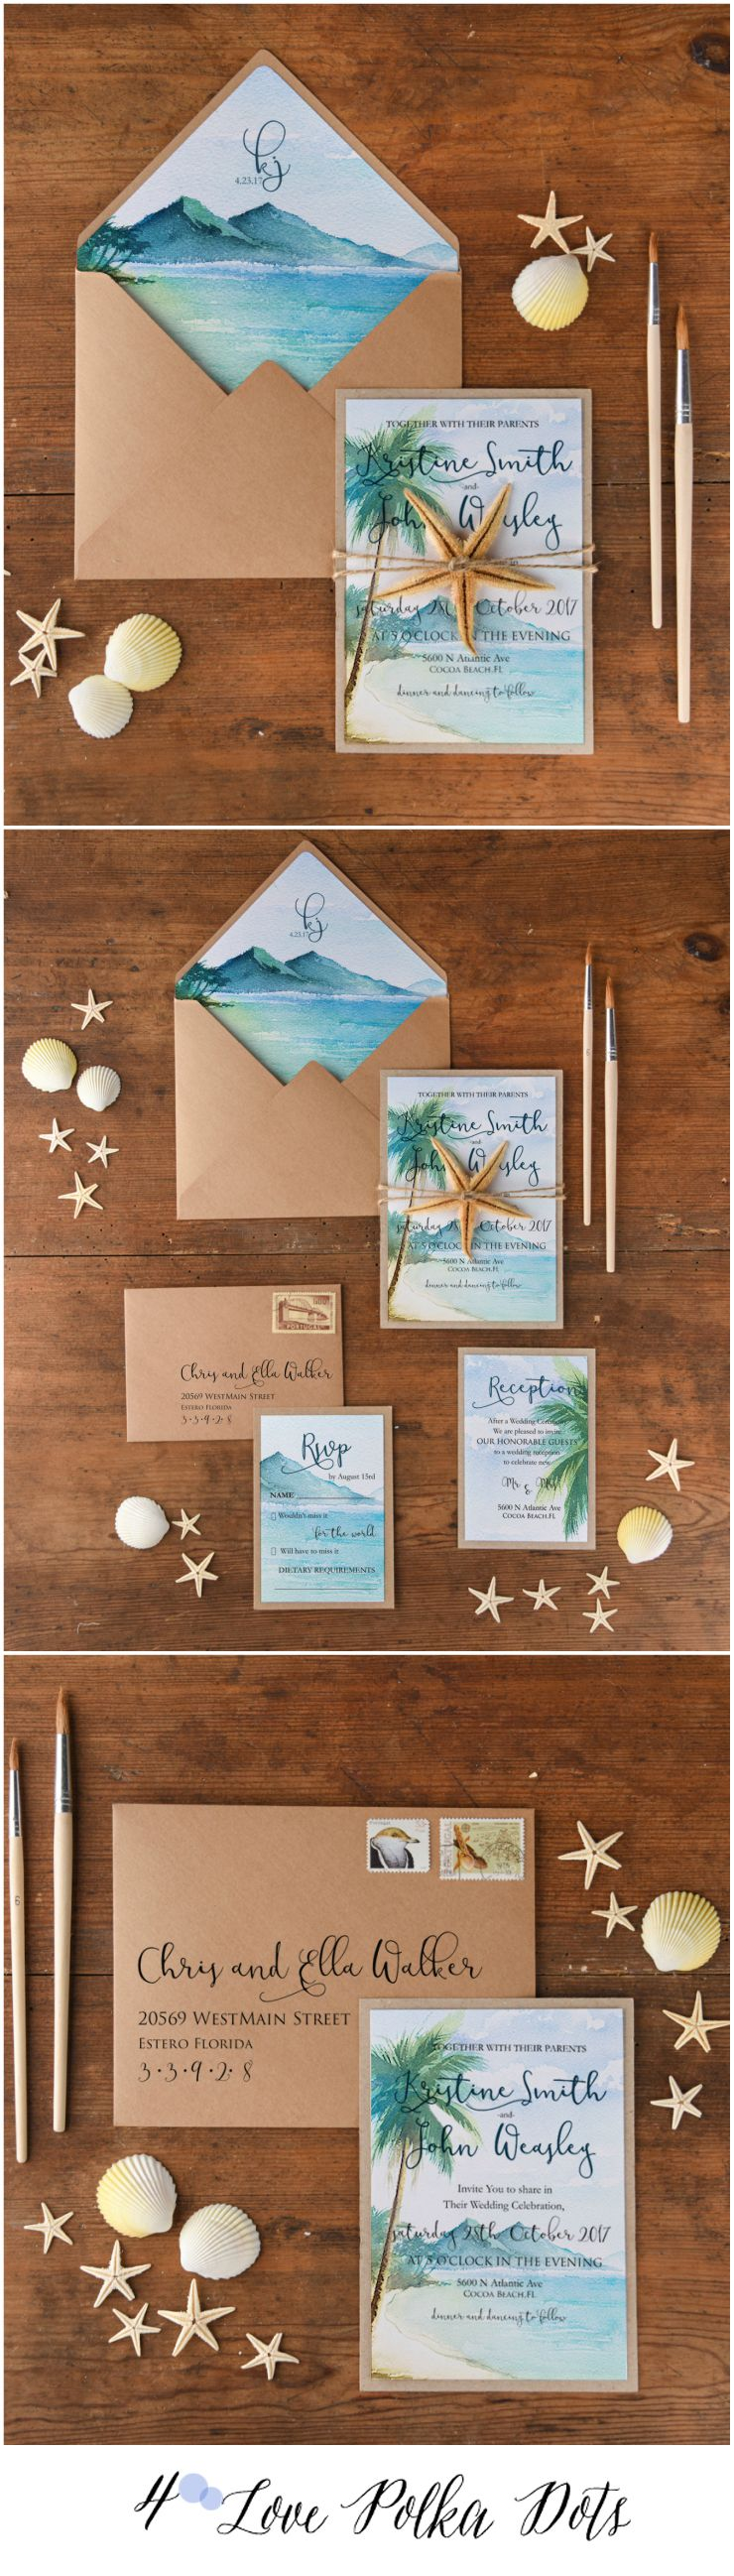 7d24eaf6a71b1 Beach Sea Watercolor wedding invitations in rustic feel  weddingideas   rustic  blue  seaside